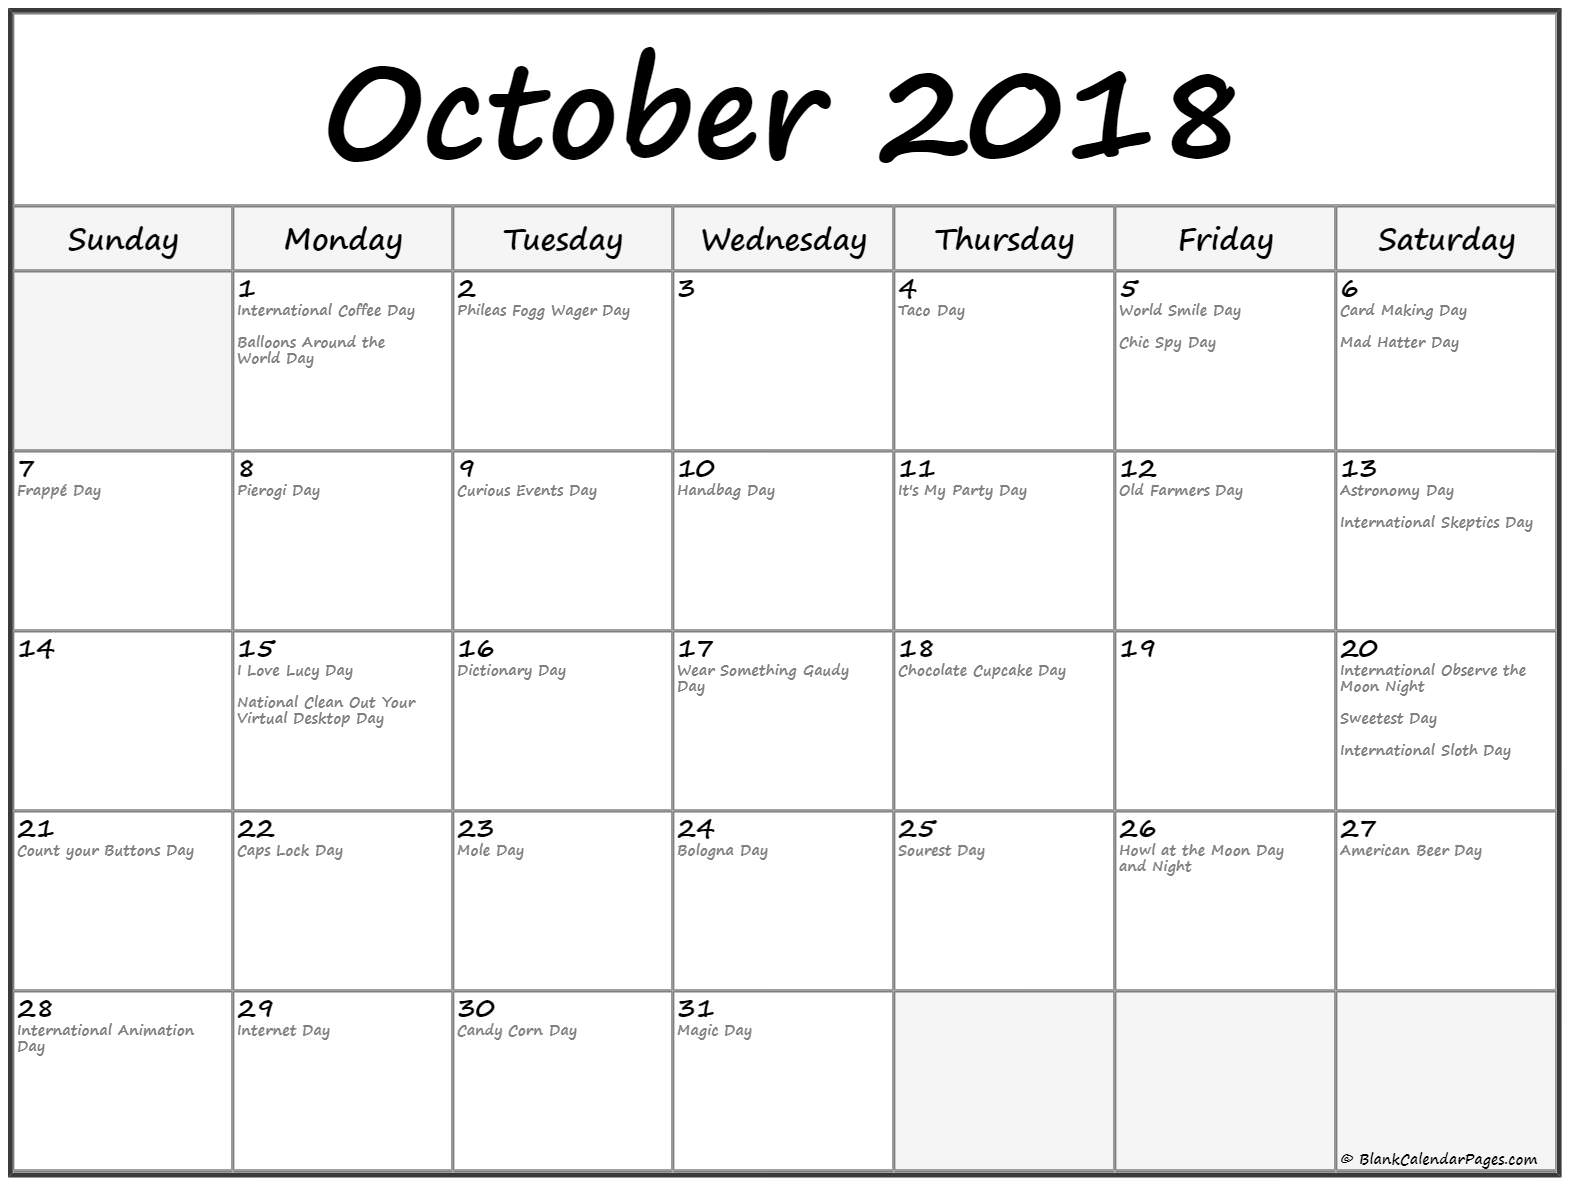 October 2018 Calendar Public Holidays